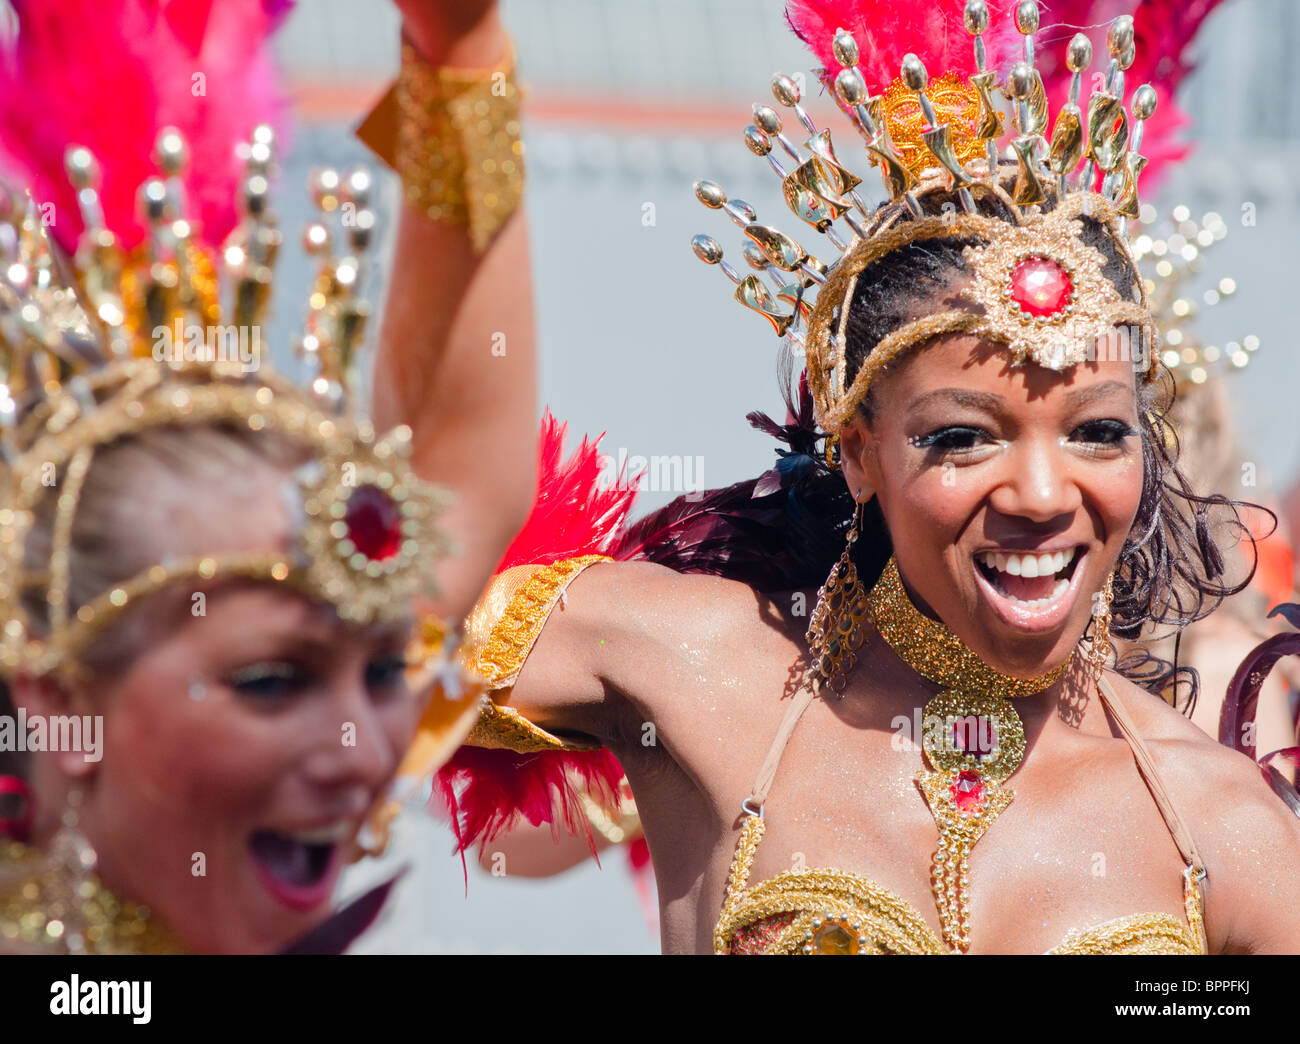 Showgirls at the Notting Hill Carnival (2010), London - Stock Image